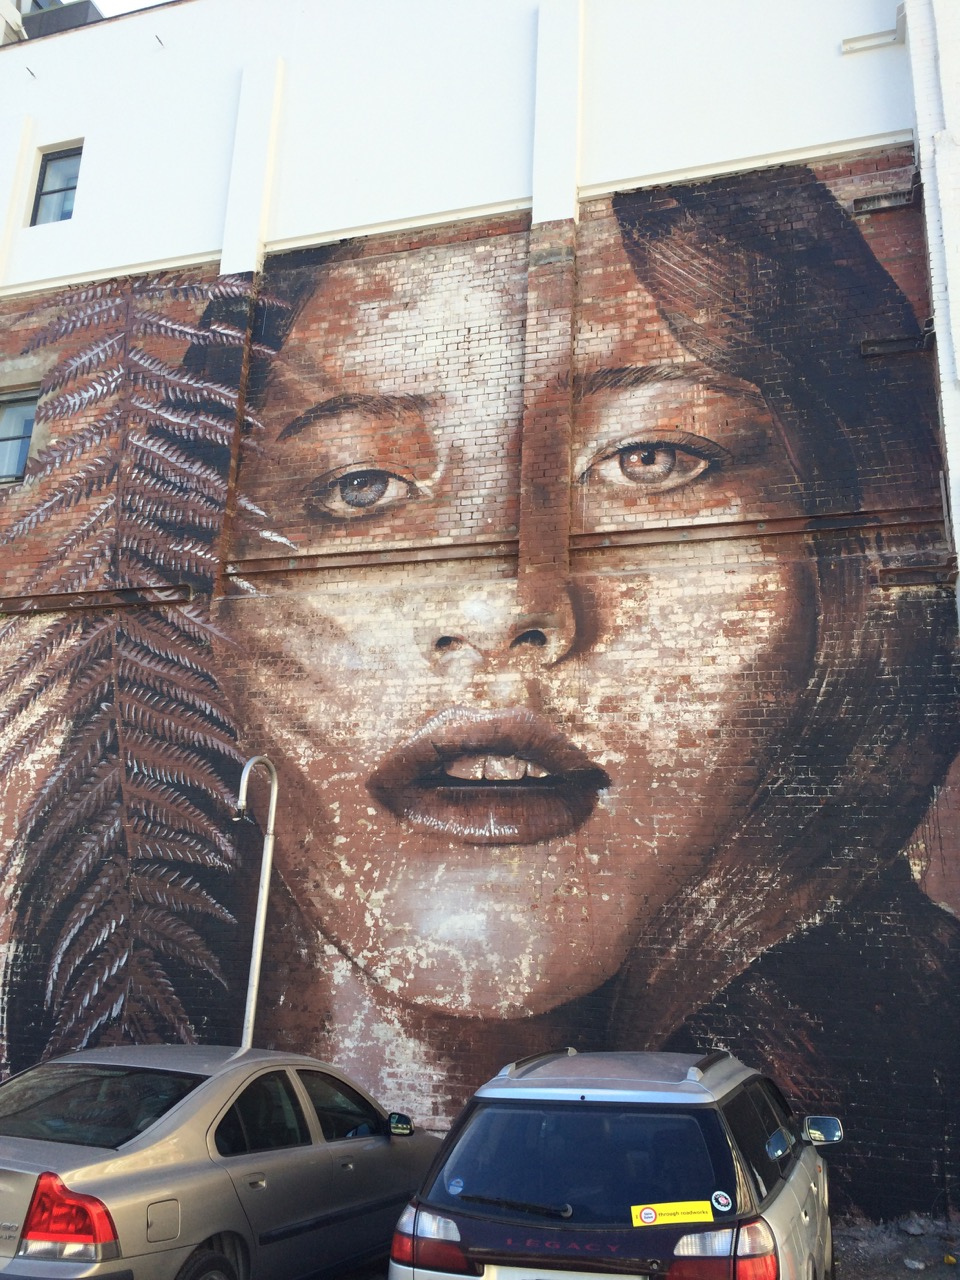 Street Artist Rone brings life to this city wall with his painting of Teresa, an Australian model with Maori heritage.